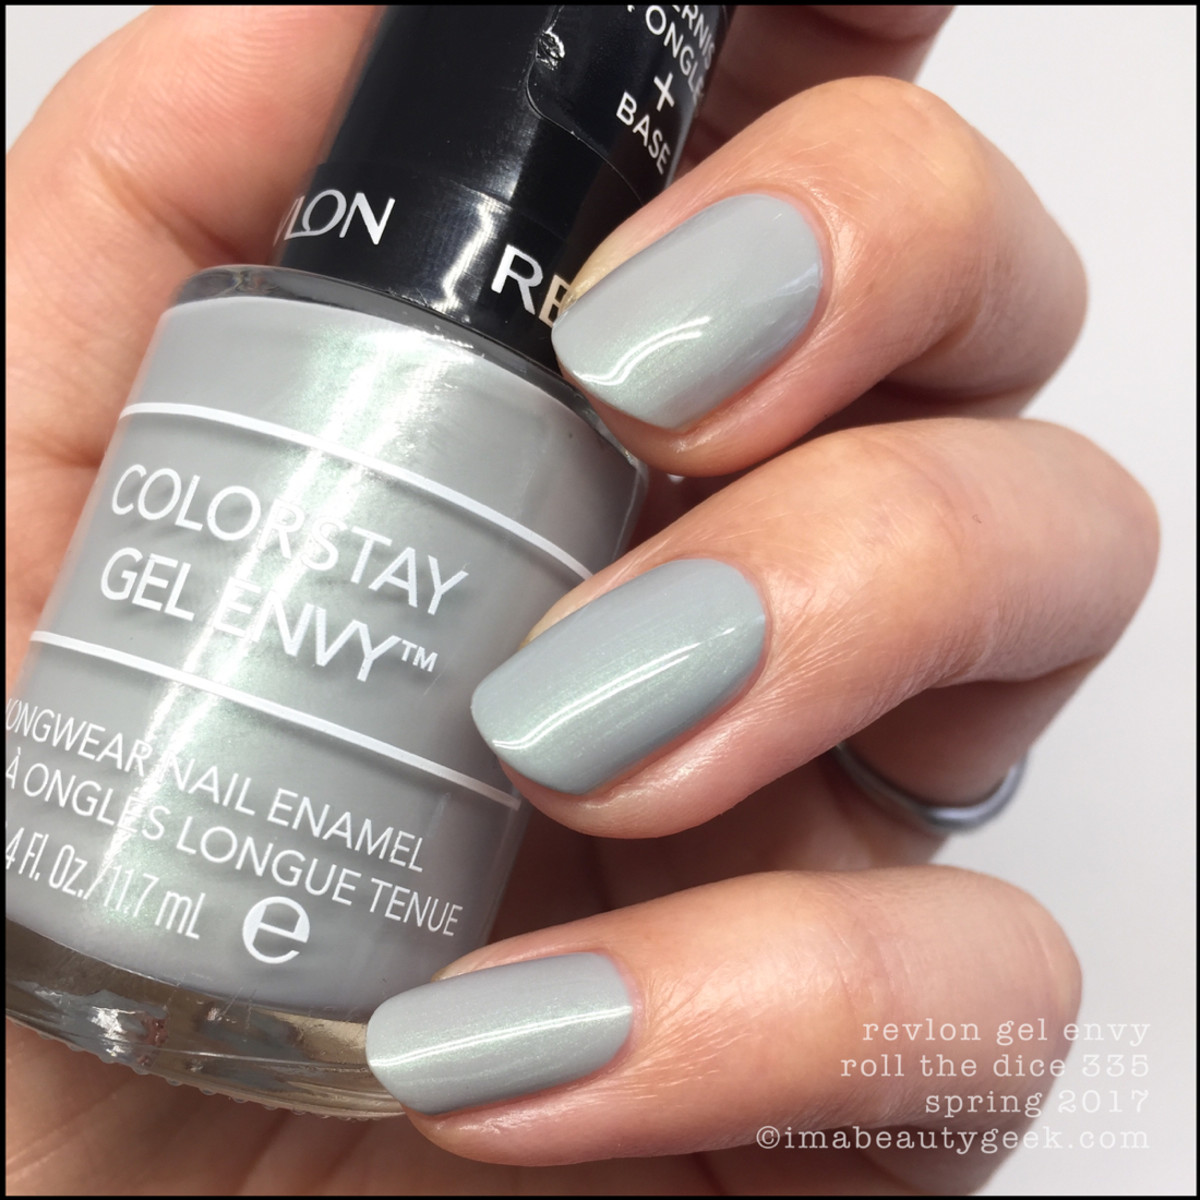 Revlon Roll The Dice Gel Envy Nail Polish Swatches